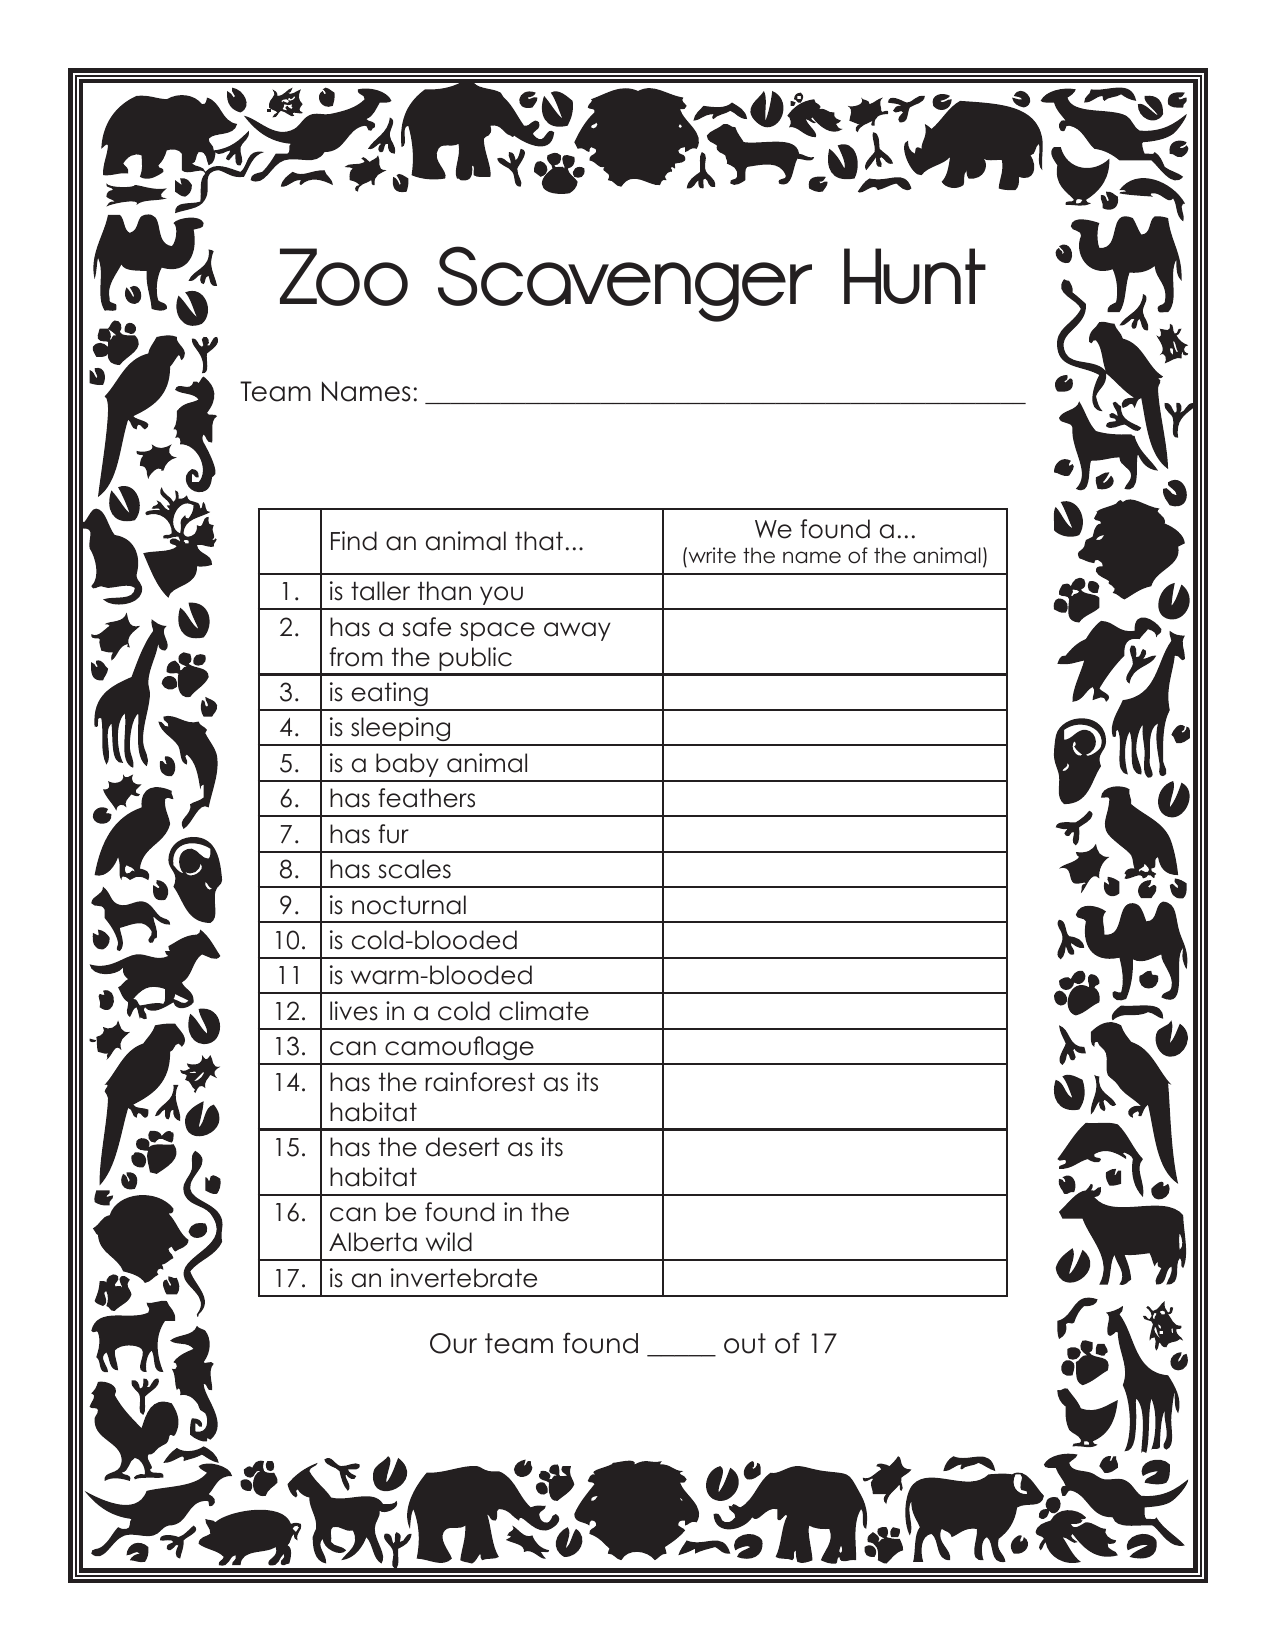 Zoo Field Trip Scavenger Hunt by abuckley · Ninja Plans